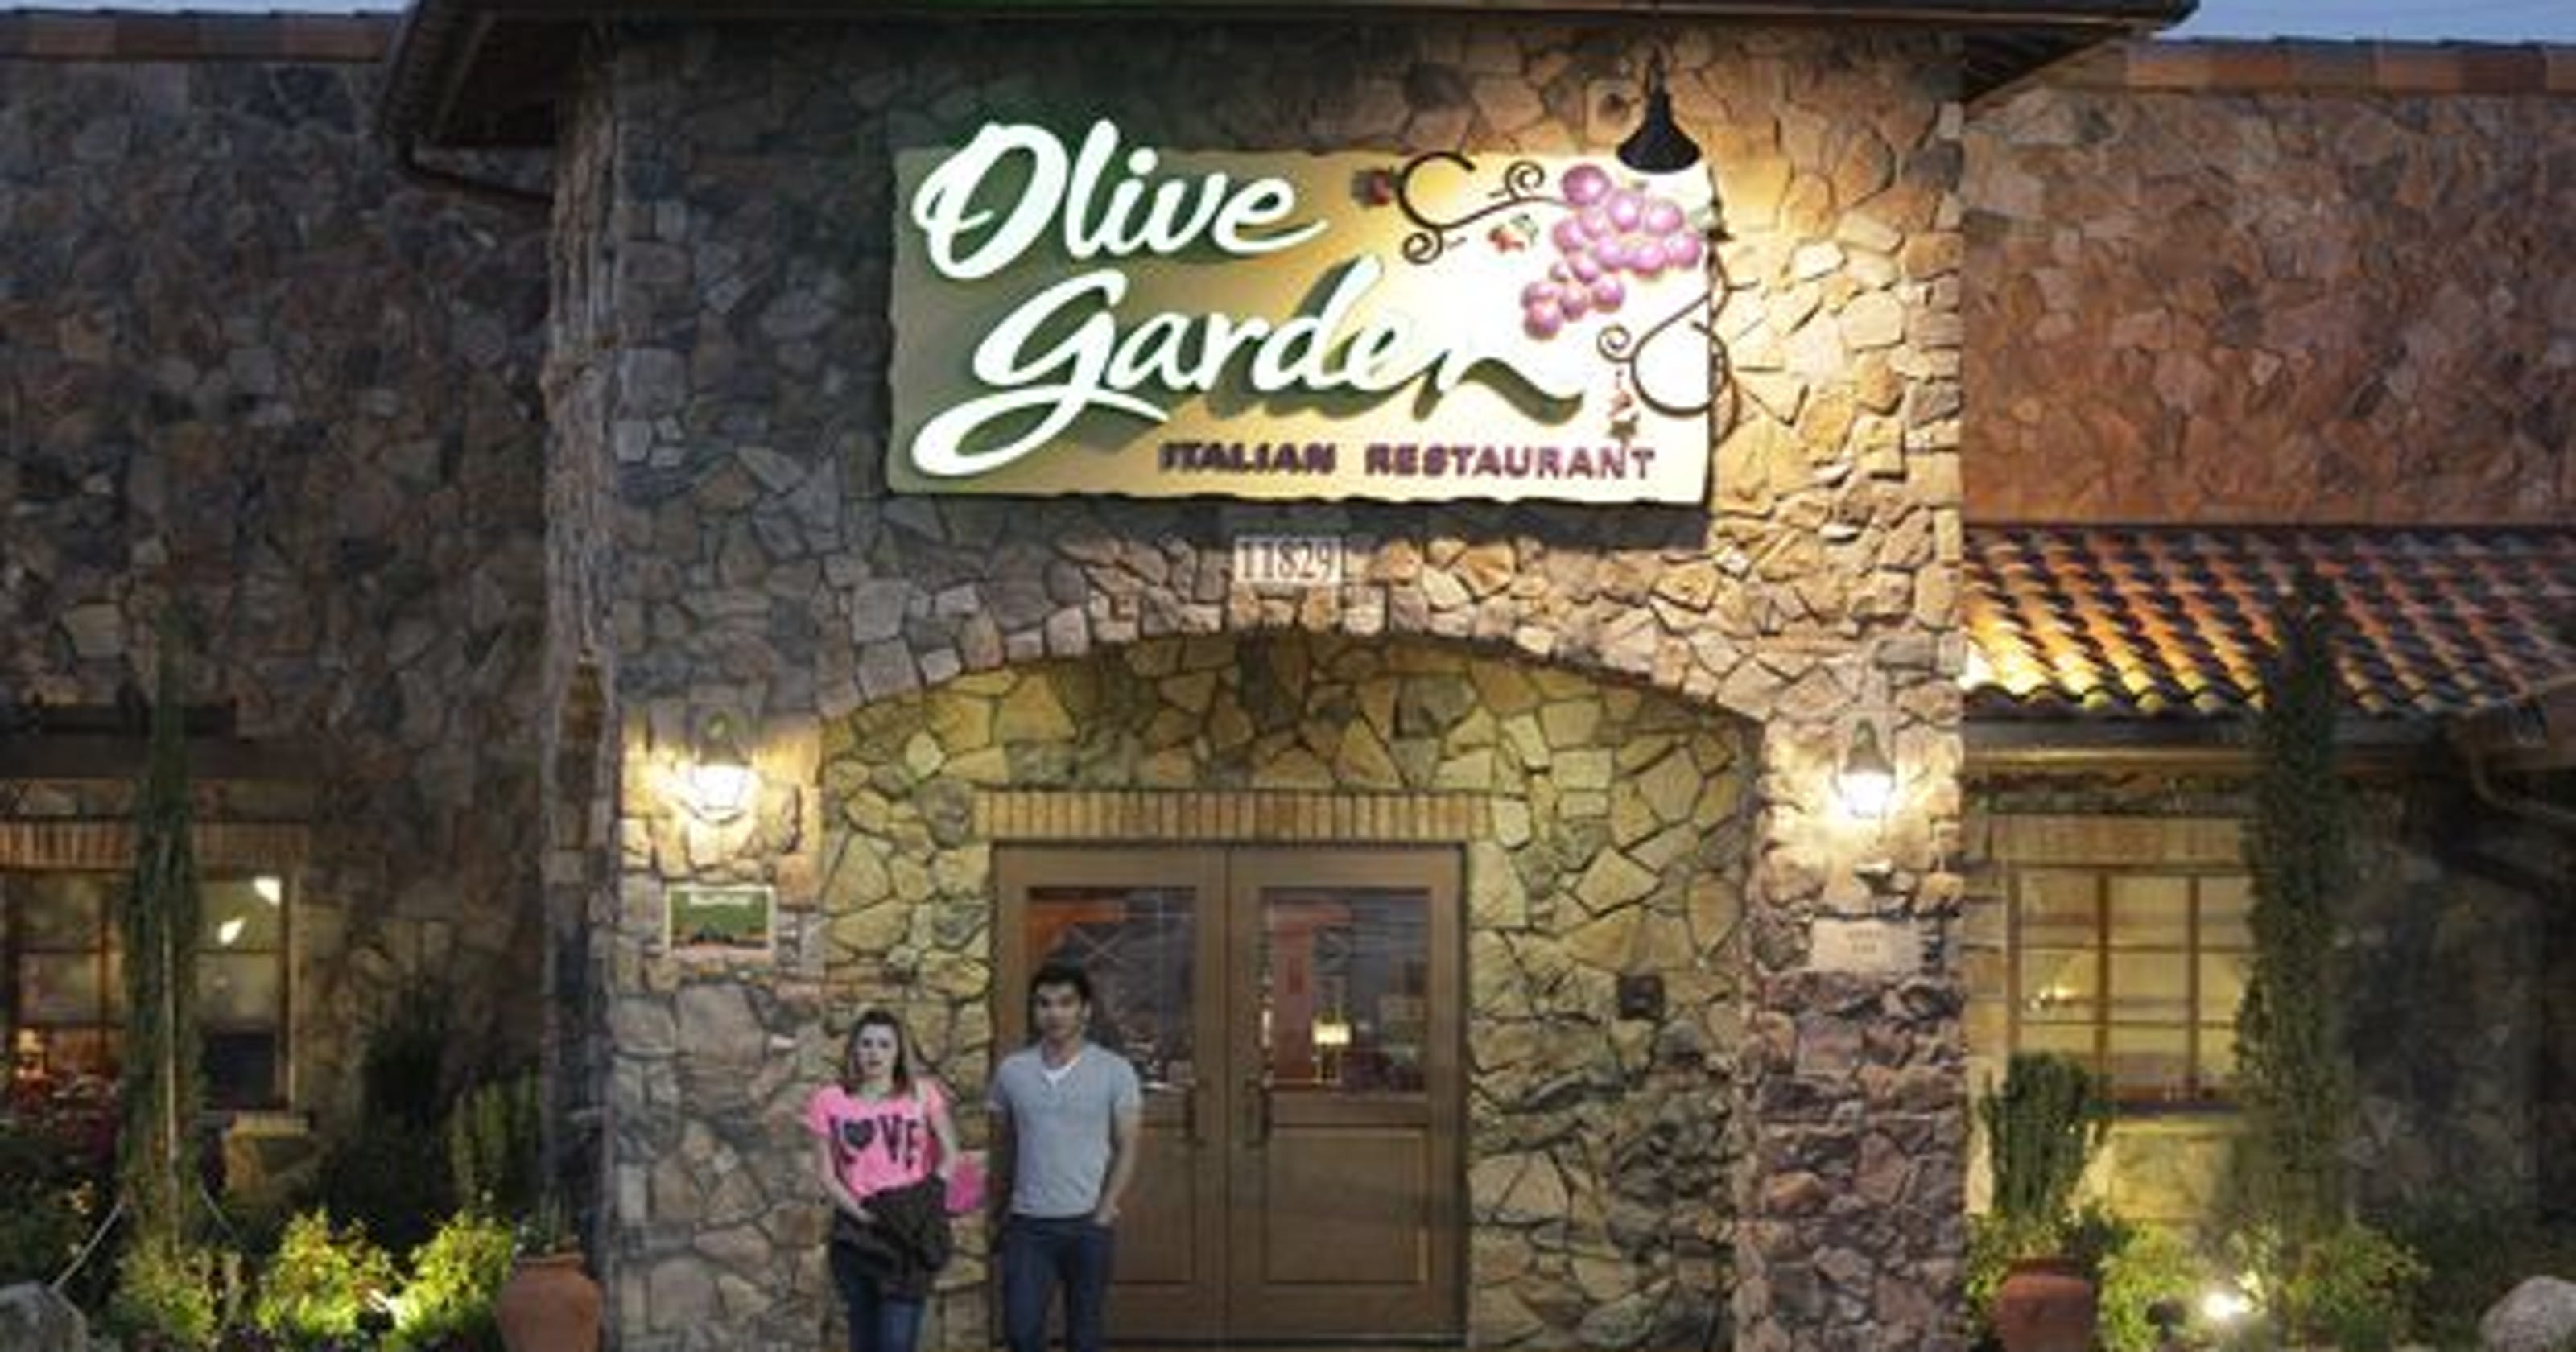 Olive Garden is fixable, experts say